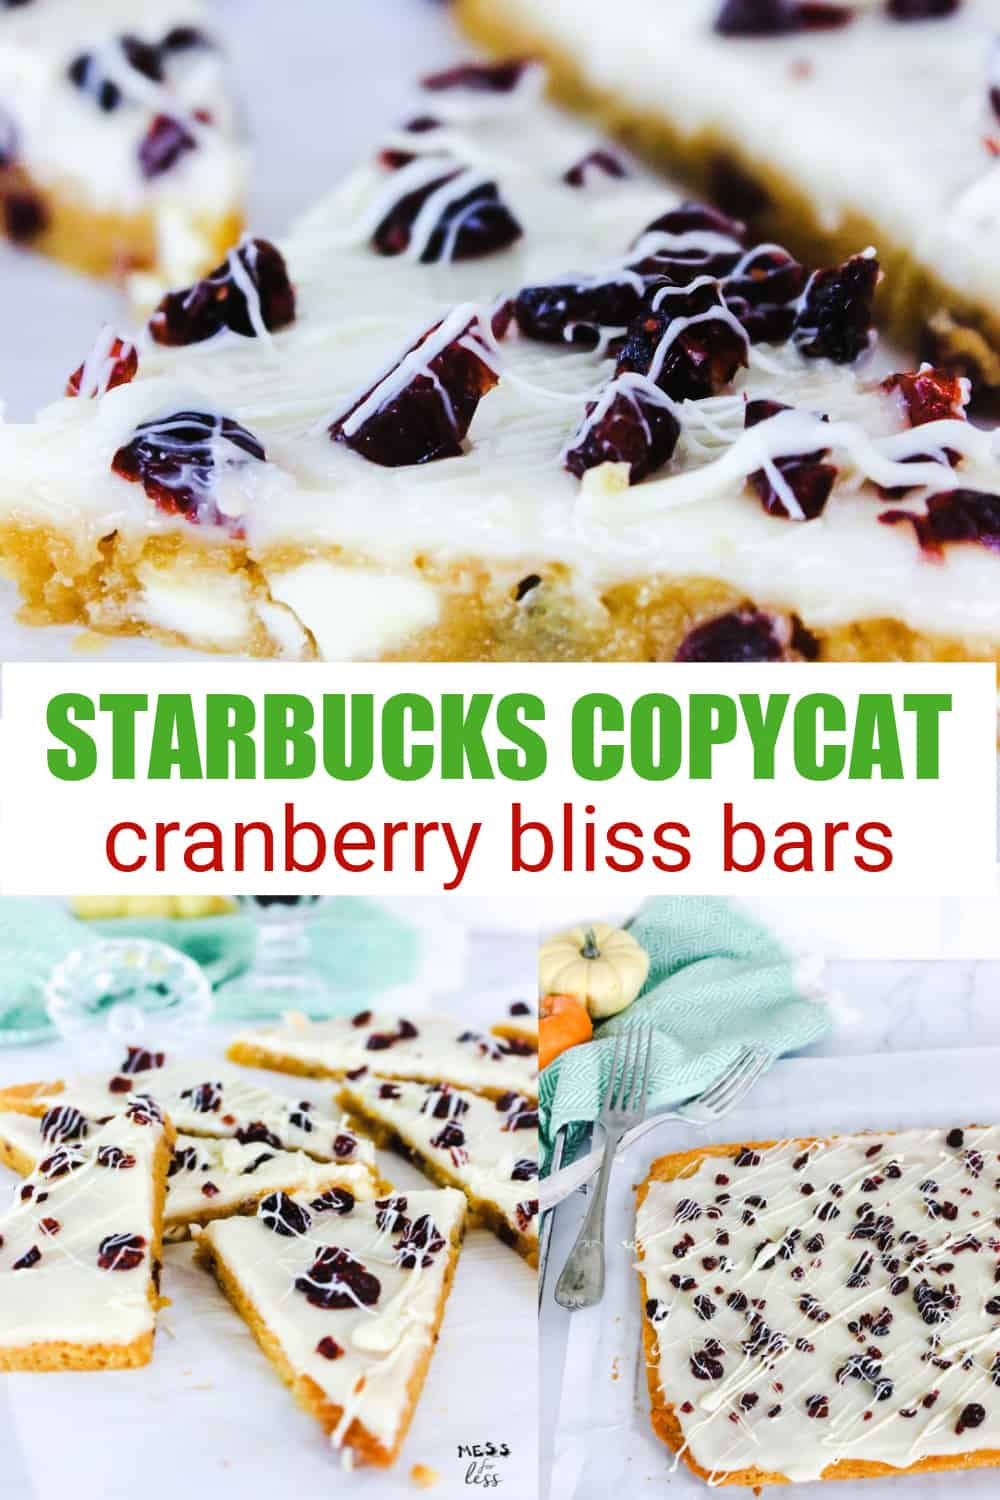 Cranberry Bliss Bars Recipe (Starbucks Copycat)